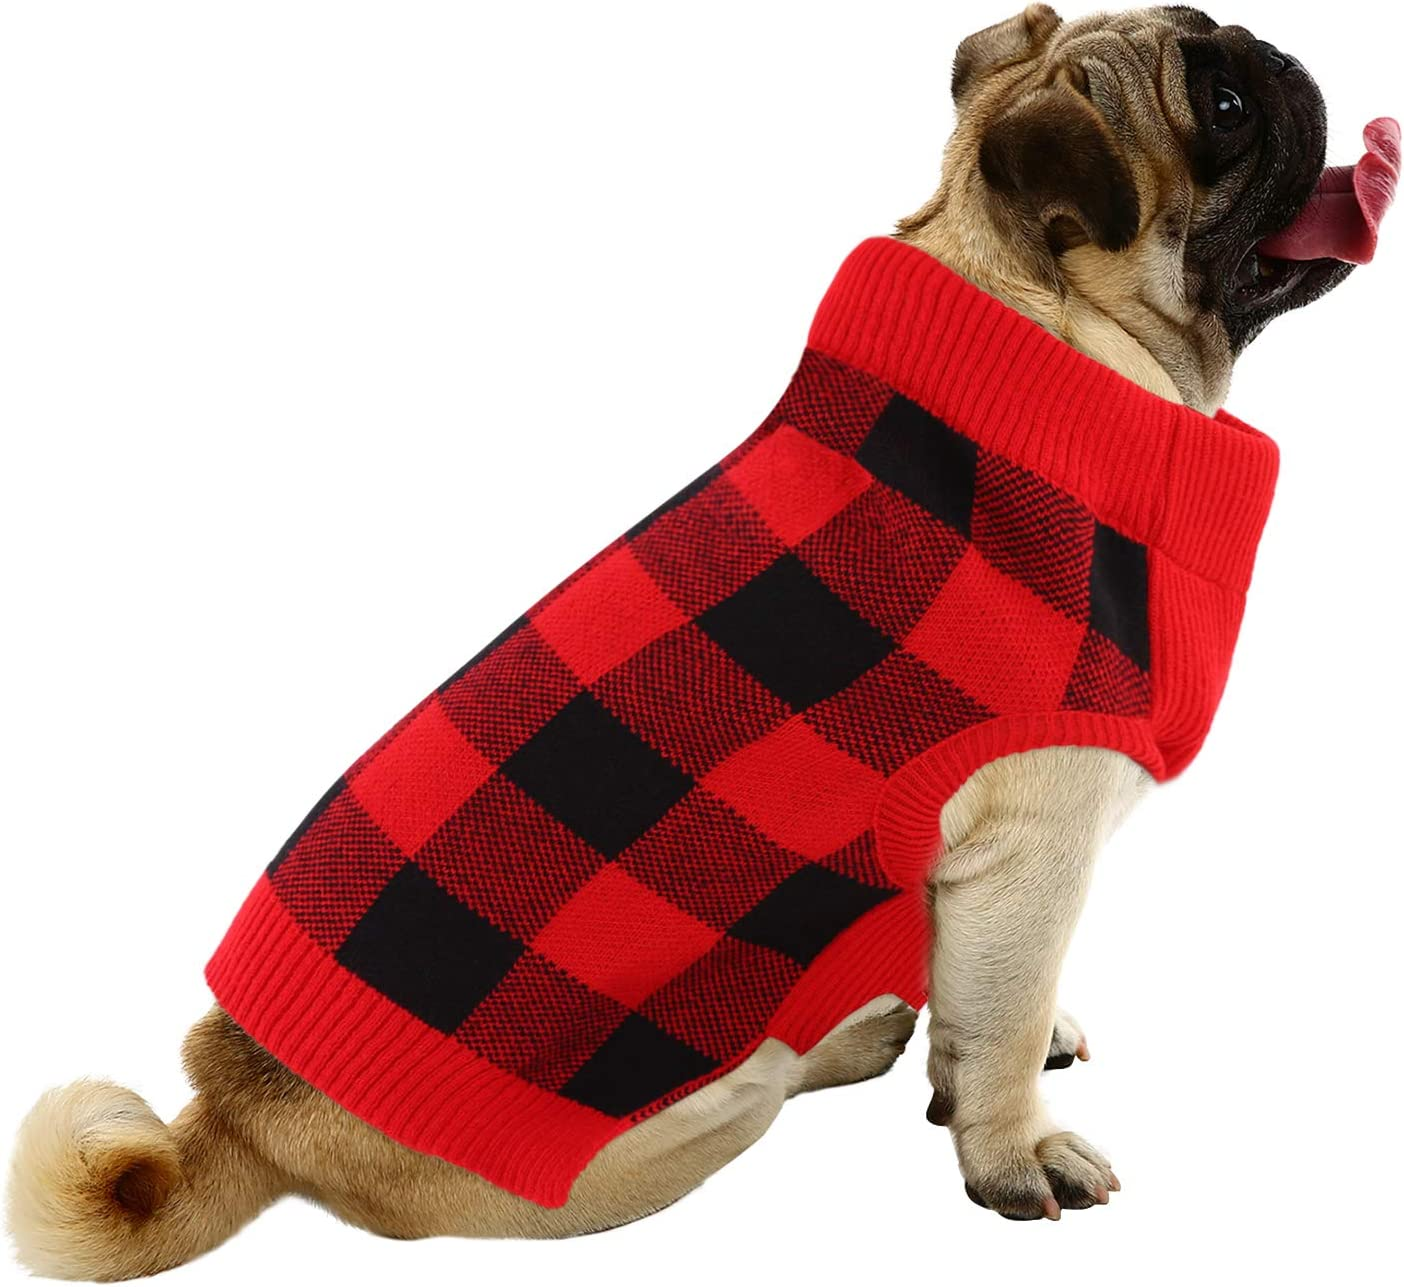 ASENKU Dog Sweater Pet Turtleneck Sweater for Small Medium Large Dogs Winter Warm Pet Christmas Sweater with Leash Hole